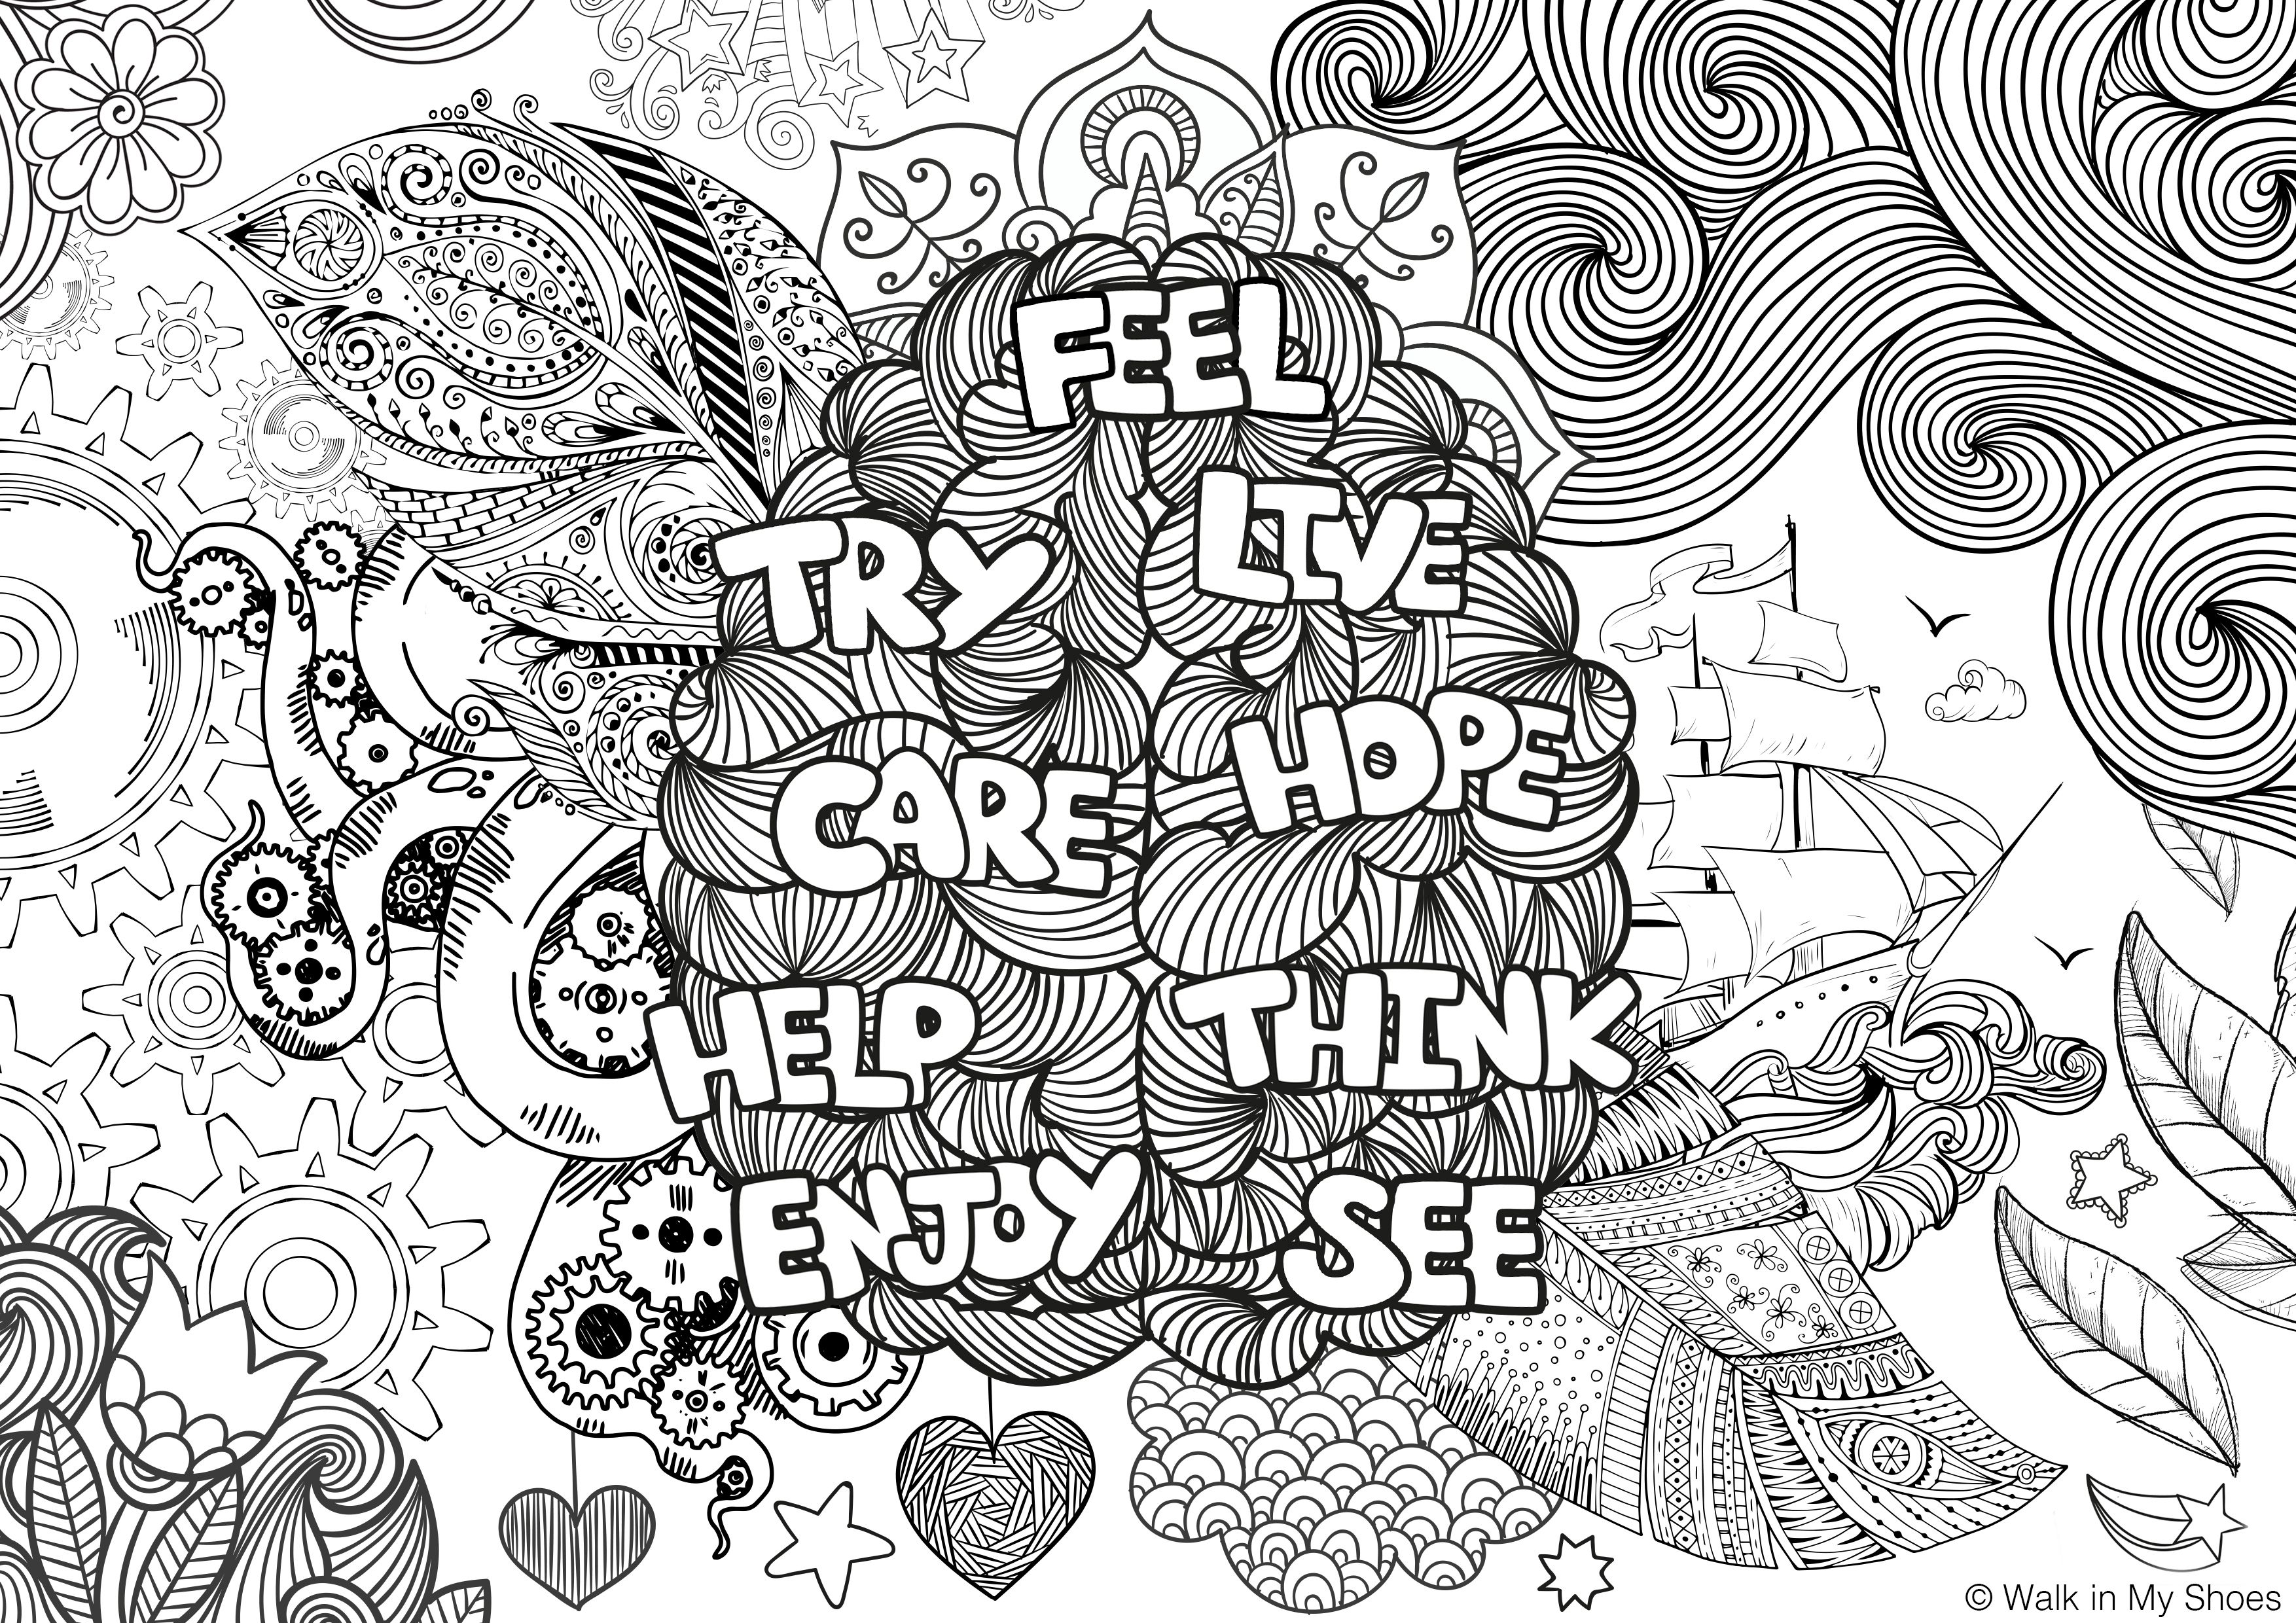 What do you do to #MindYourSelfie?   Mindfulness colouring ...